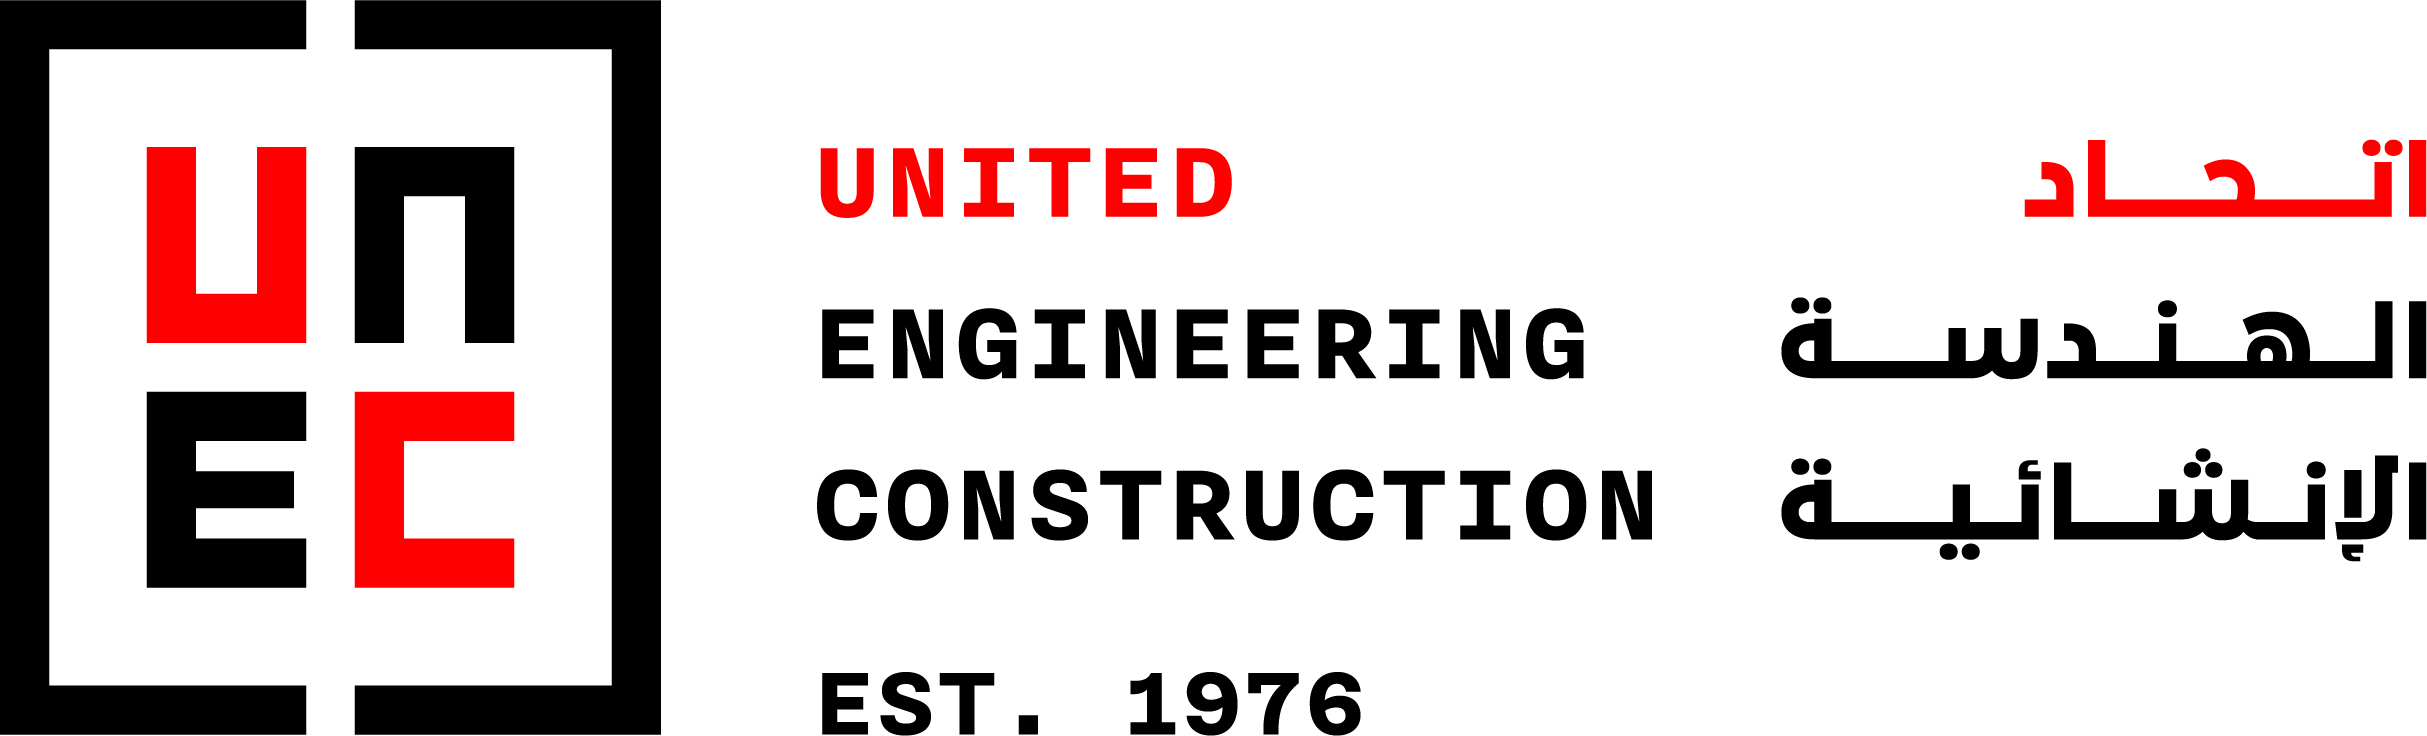 Image result for UNITED ENGINEERING AND CONSTRUCTION COMPANY nigeria